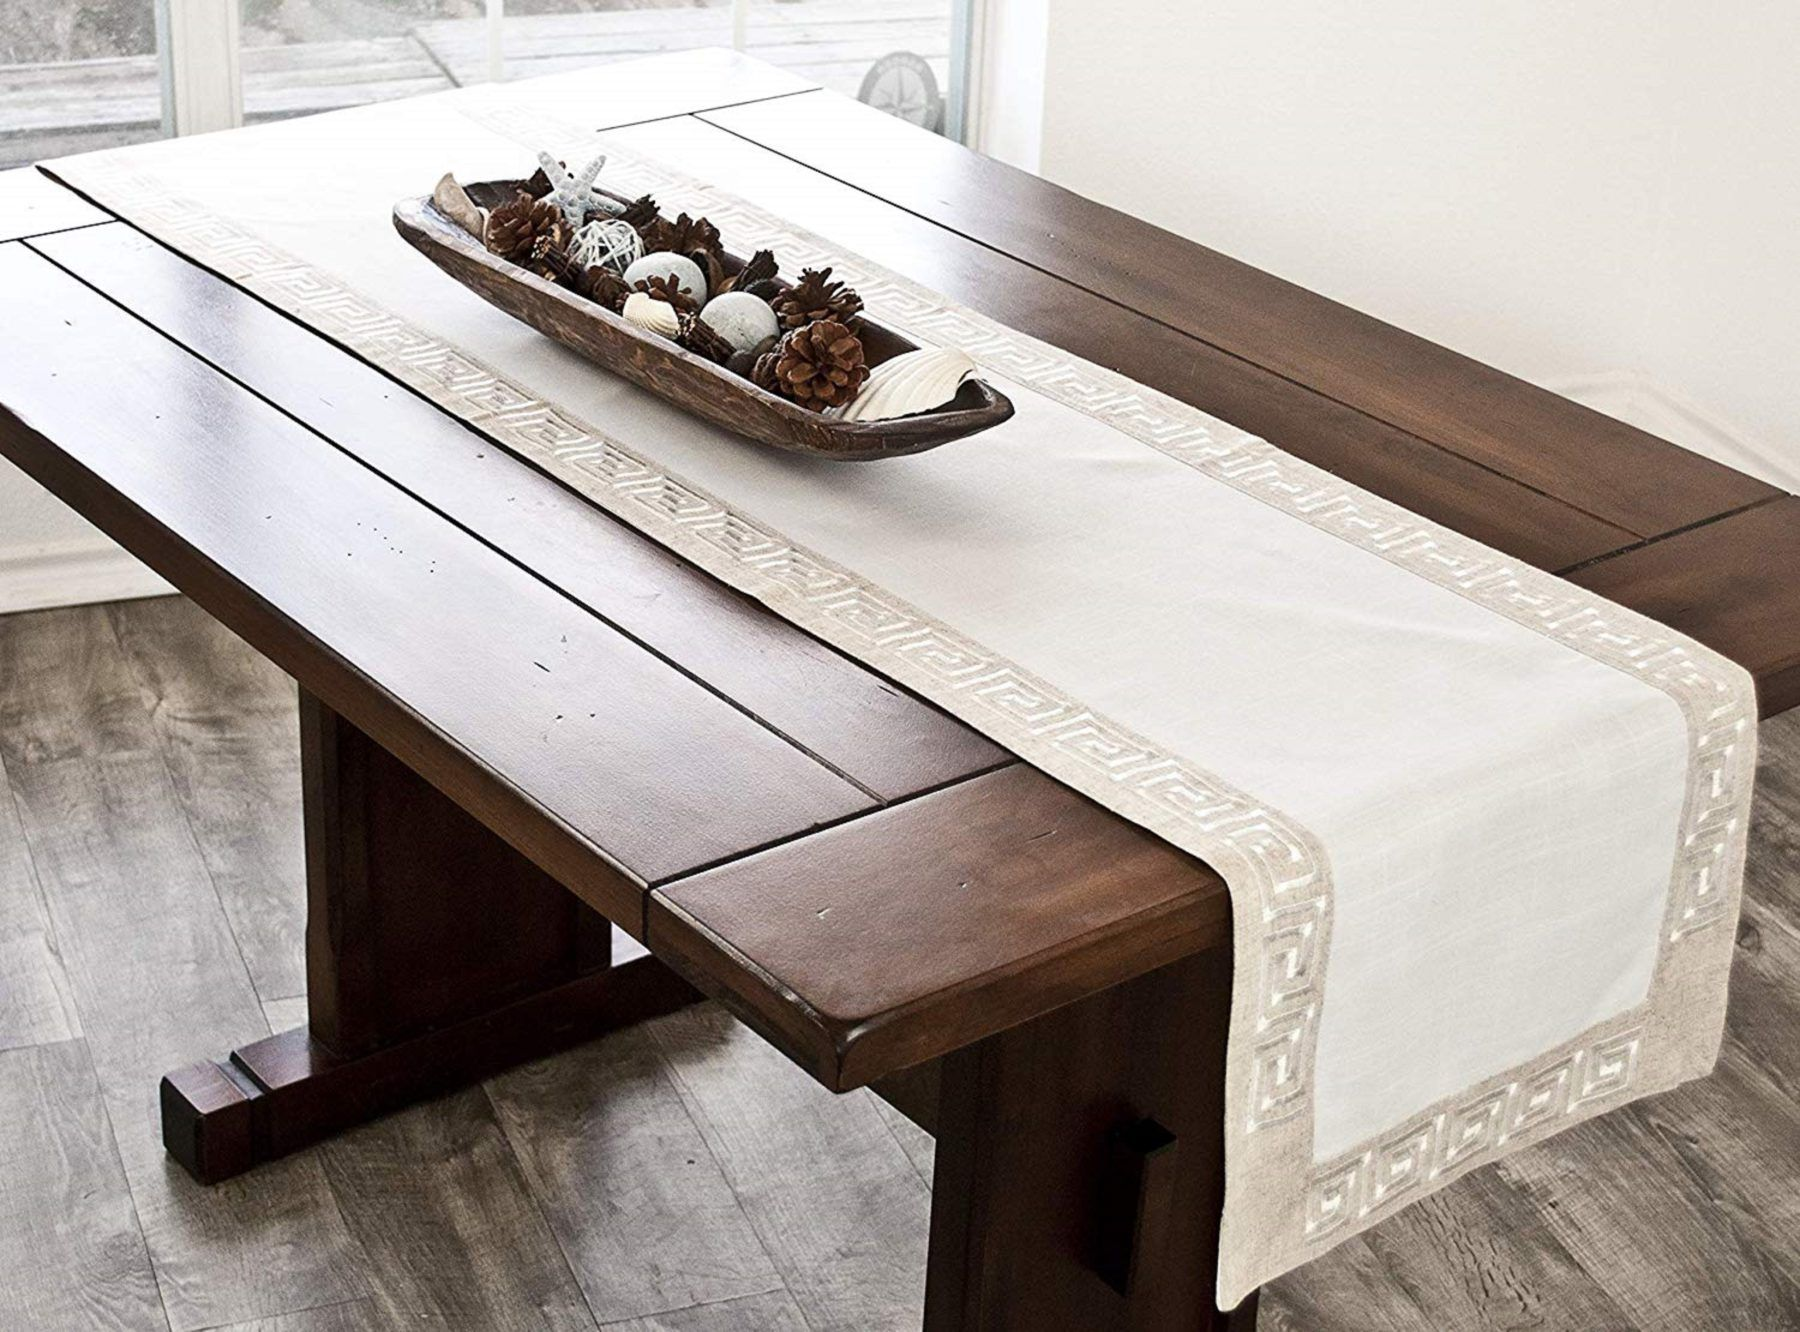 19 95 Natural Beige Earth Tone Greek Key Table Runner In 2020 Elegant Tablecloth Table Runners Colorful Table